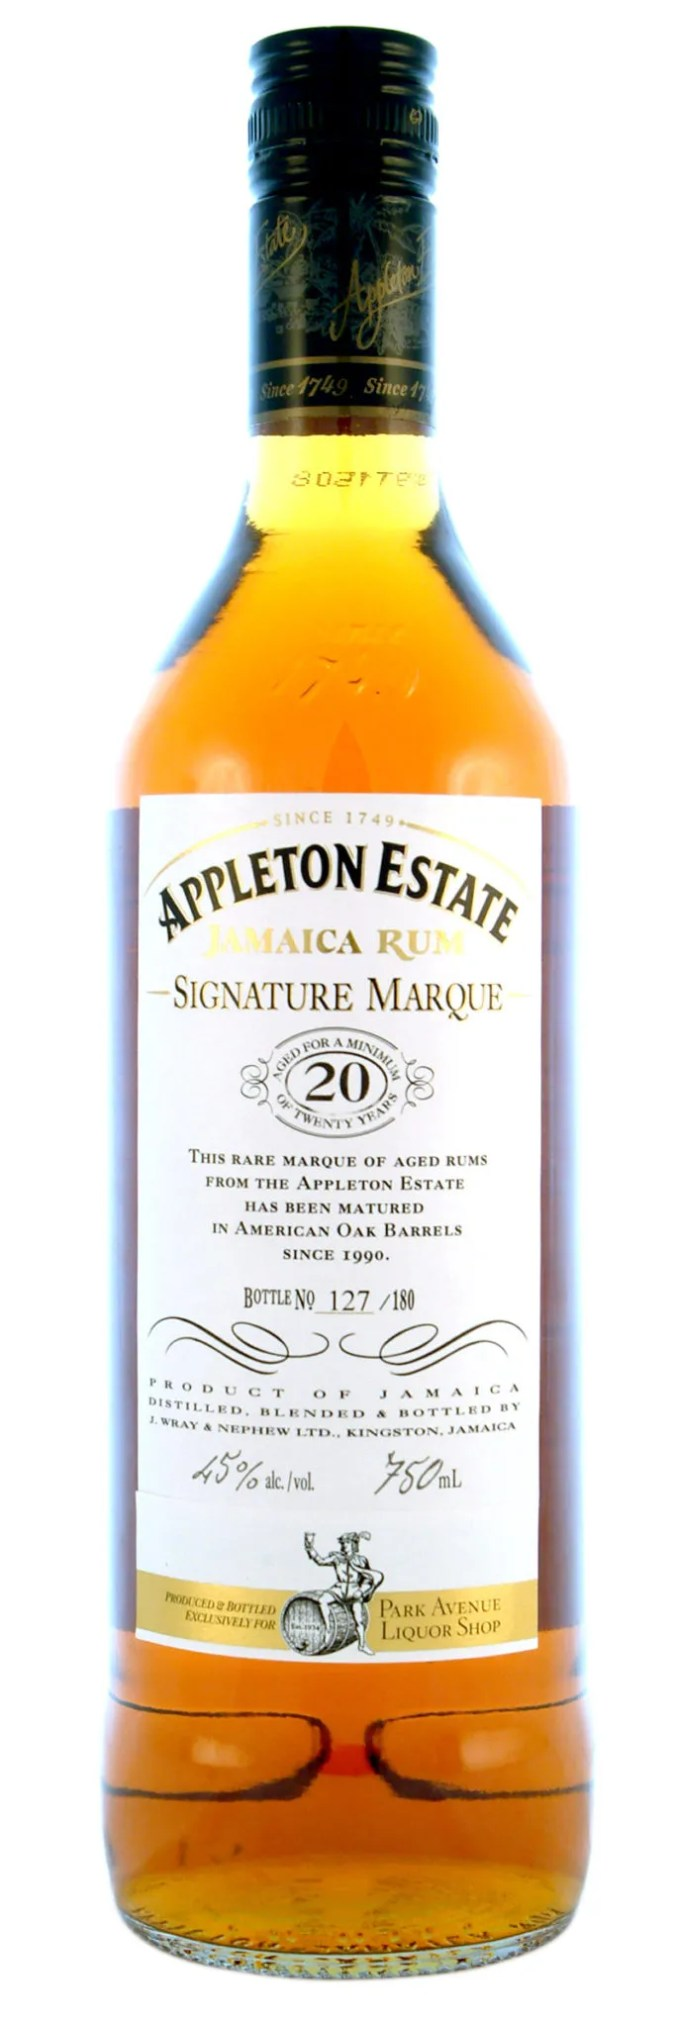 Appleton Estate 20 year old Signature Marque limited edition for Park Avenue Liquor Shop. Barreled in 1990, bottled in 2010. Only 180 750ml bottles. 45% abv.